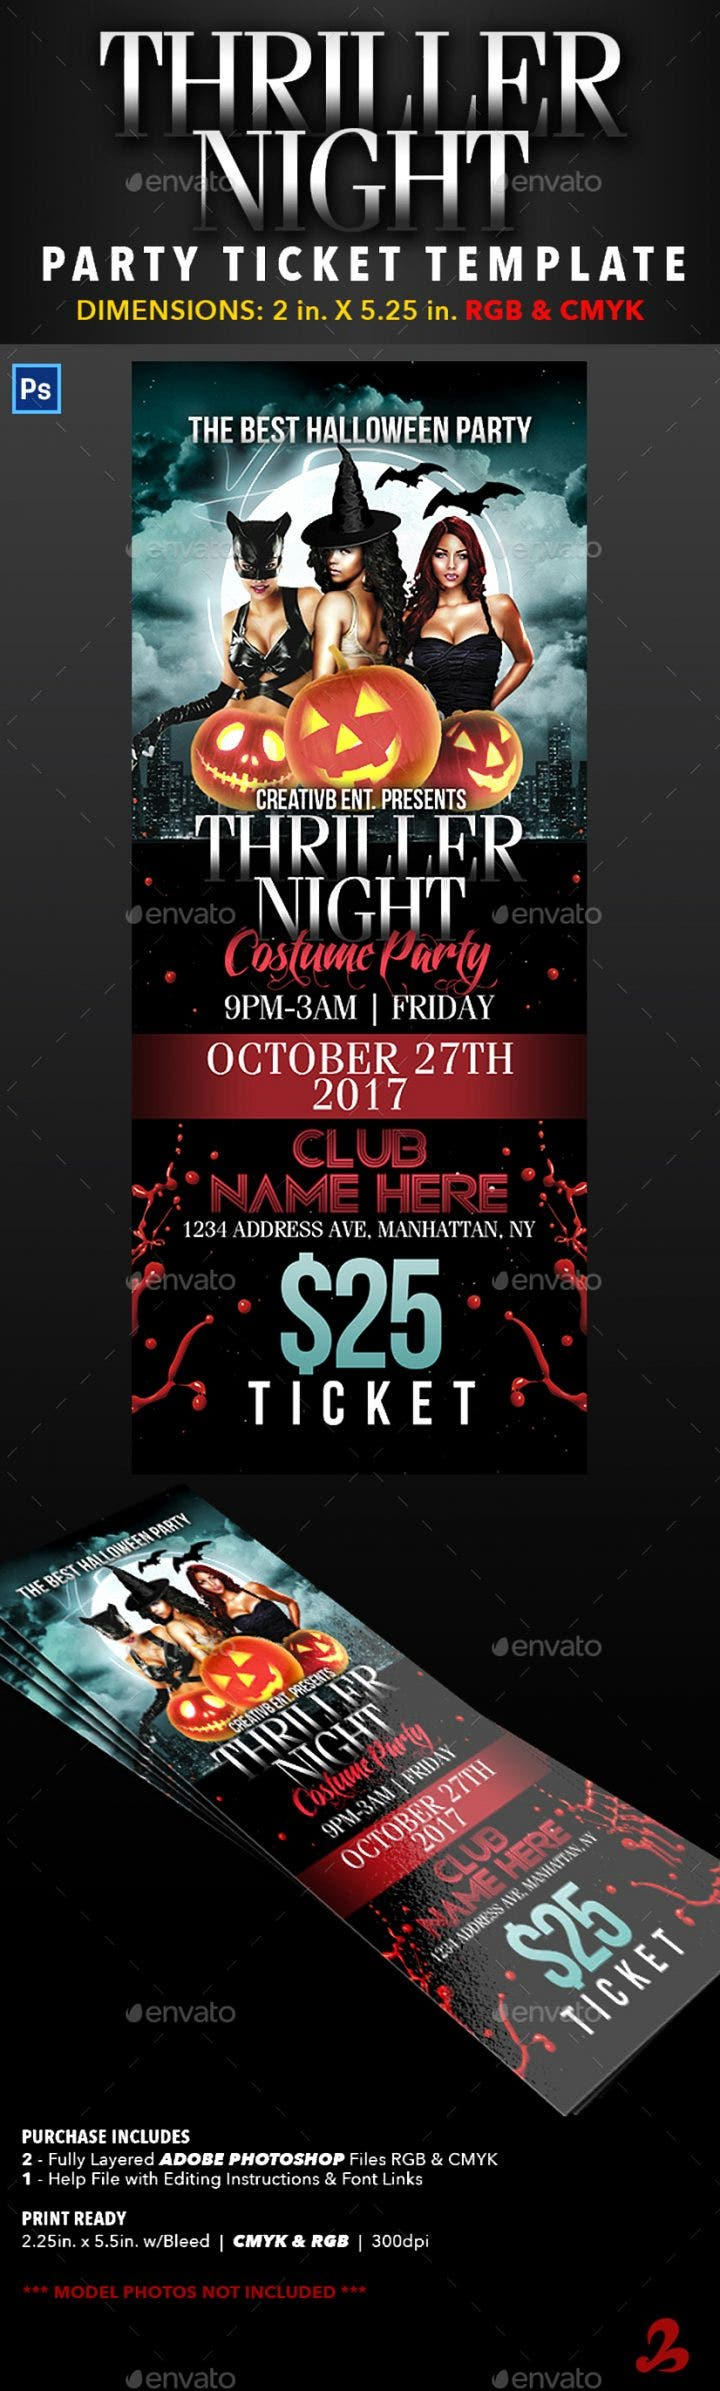 thriller night ticket image preview